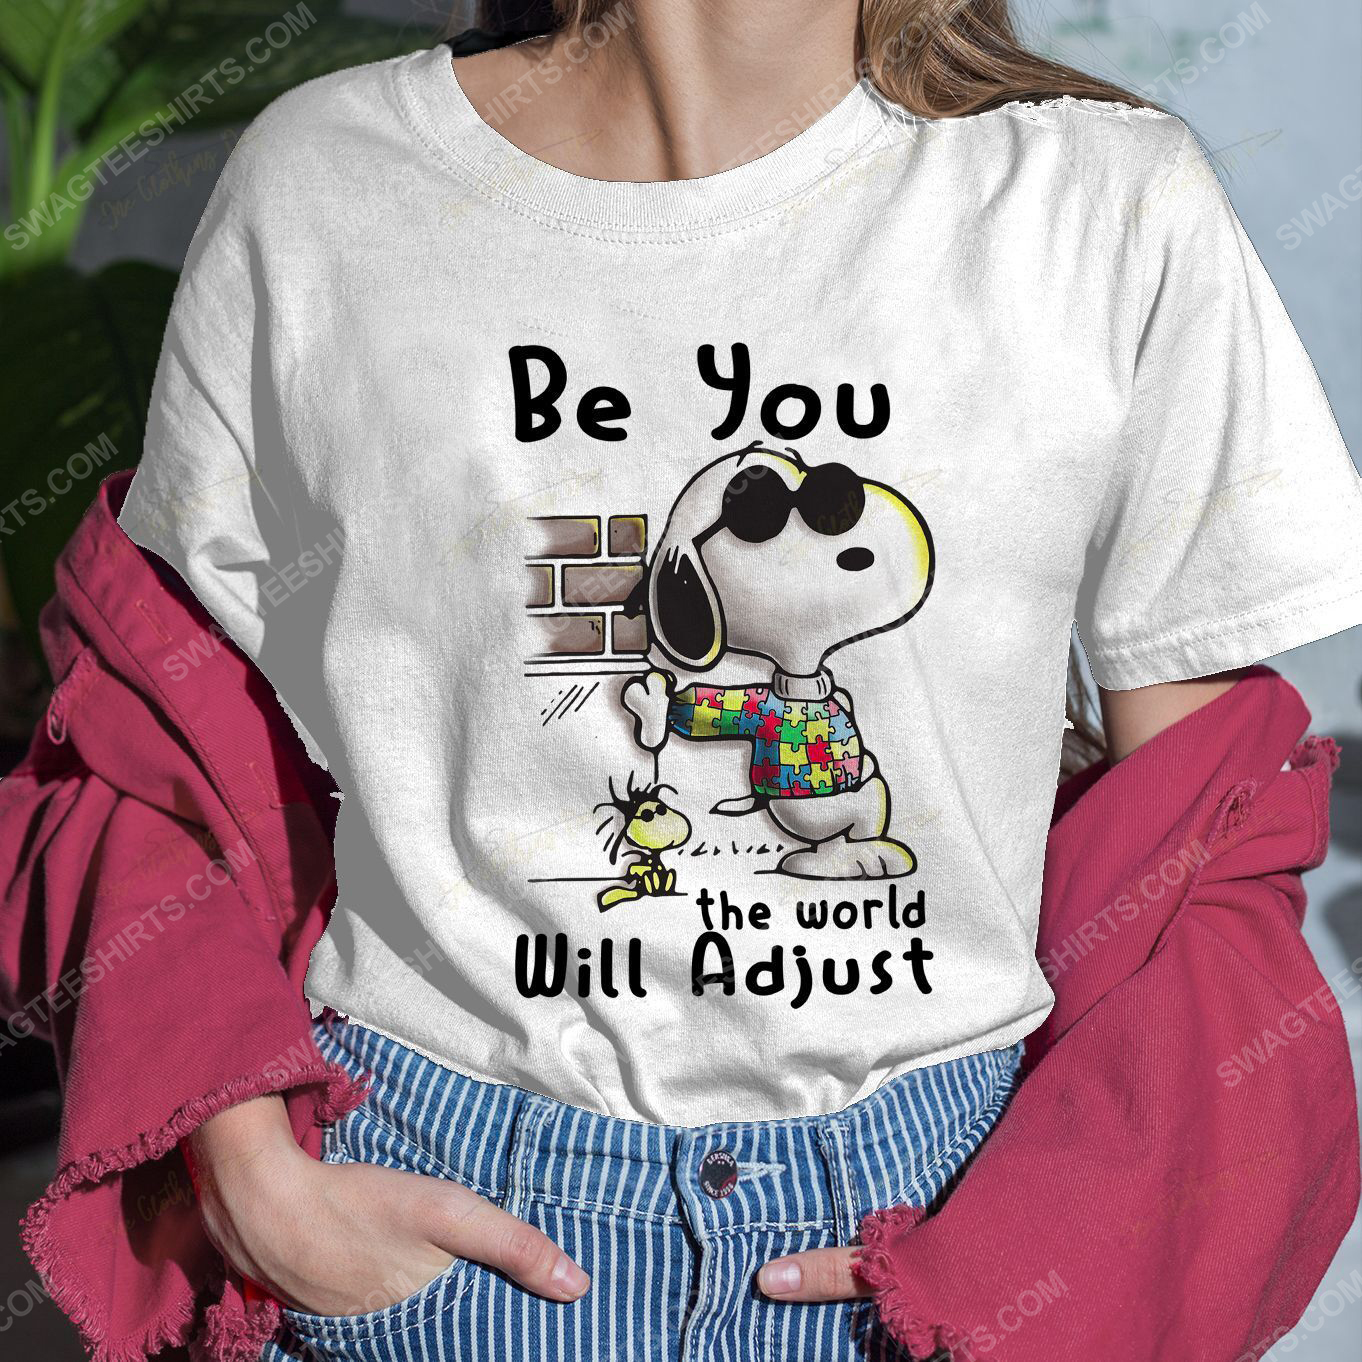 Snoopy charlie brown be you the world will adjust shirt 3(1)